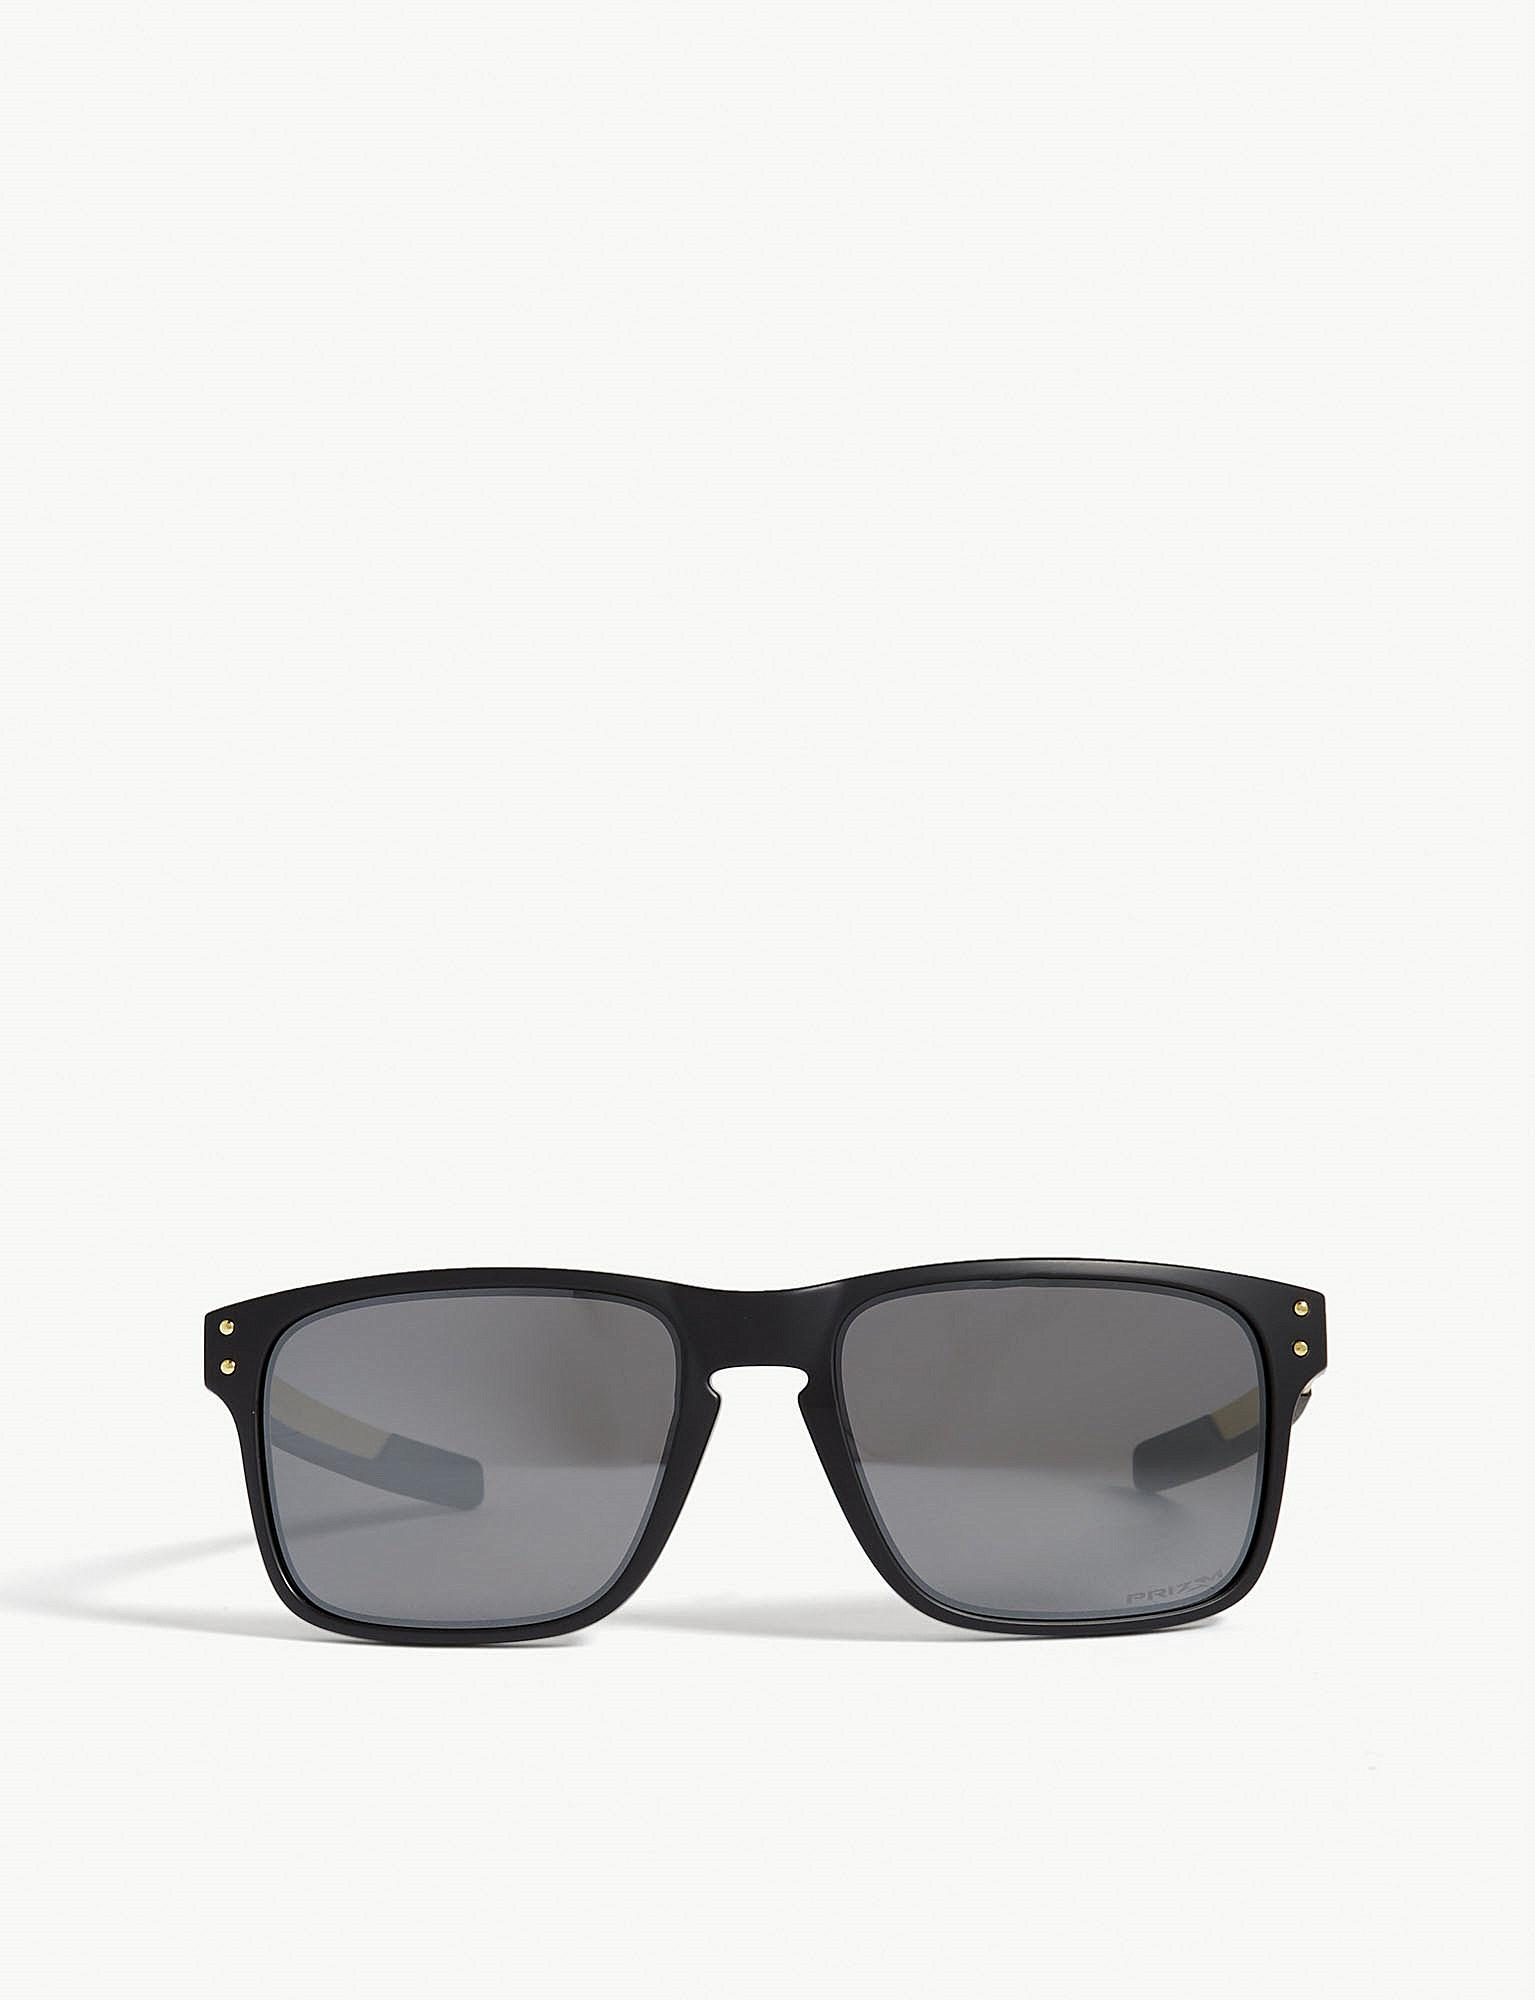 310a9233b9 Lyst - Oakley Holbrook Mix Rectangle-frame Sunglasses in Black for Men